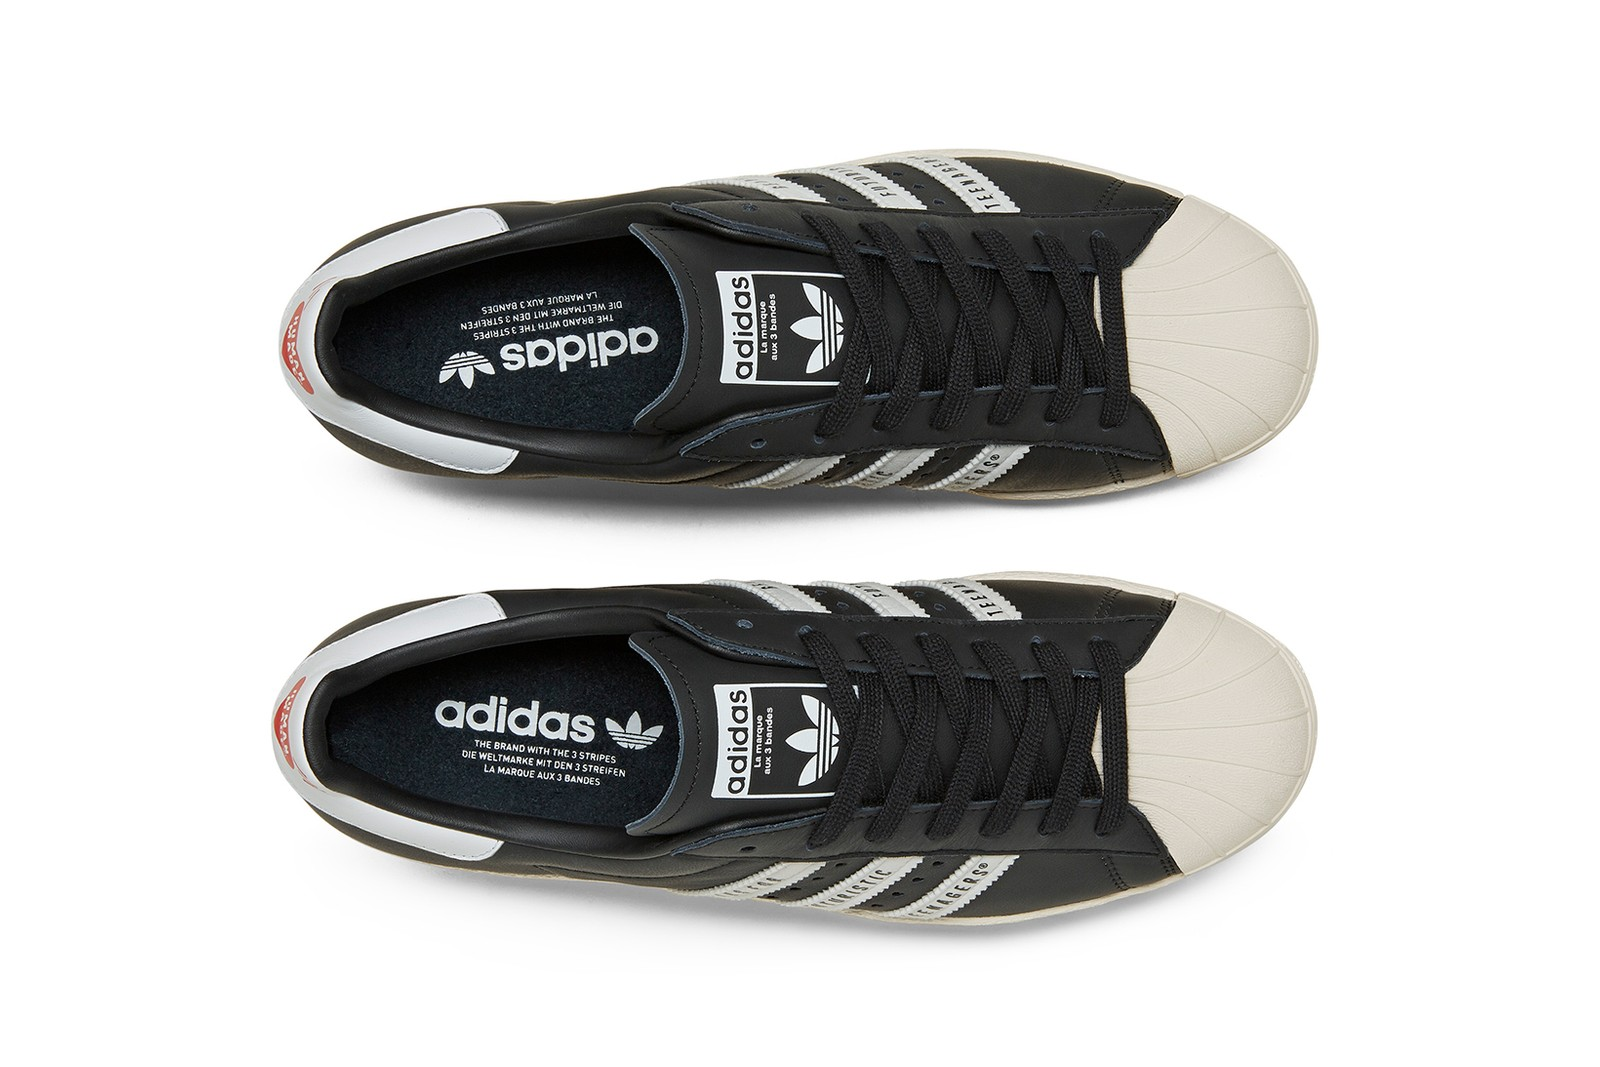 HUMAN MADE x adidas Originals Release Date Superstar 80s Sneakers Collaboration NIGO